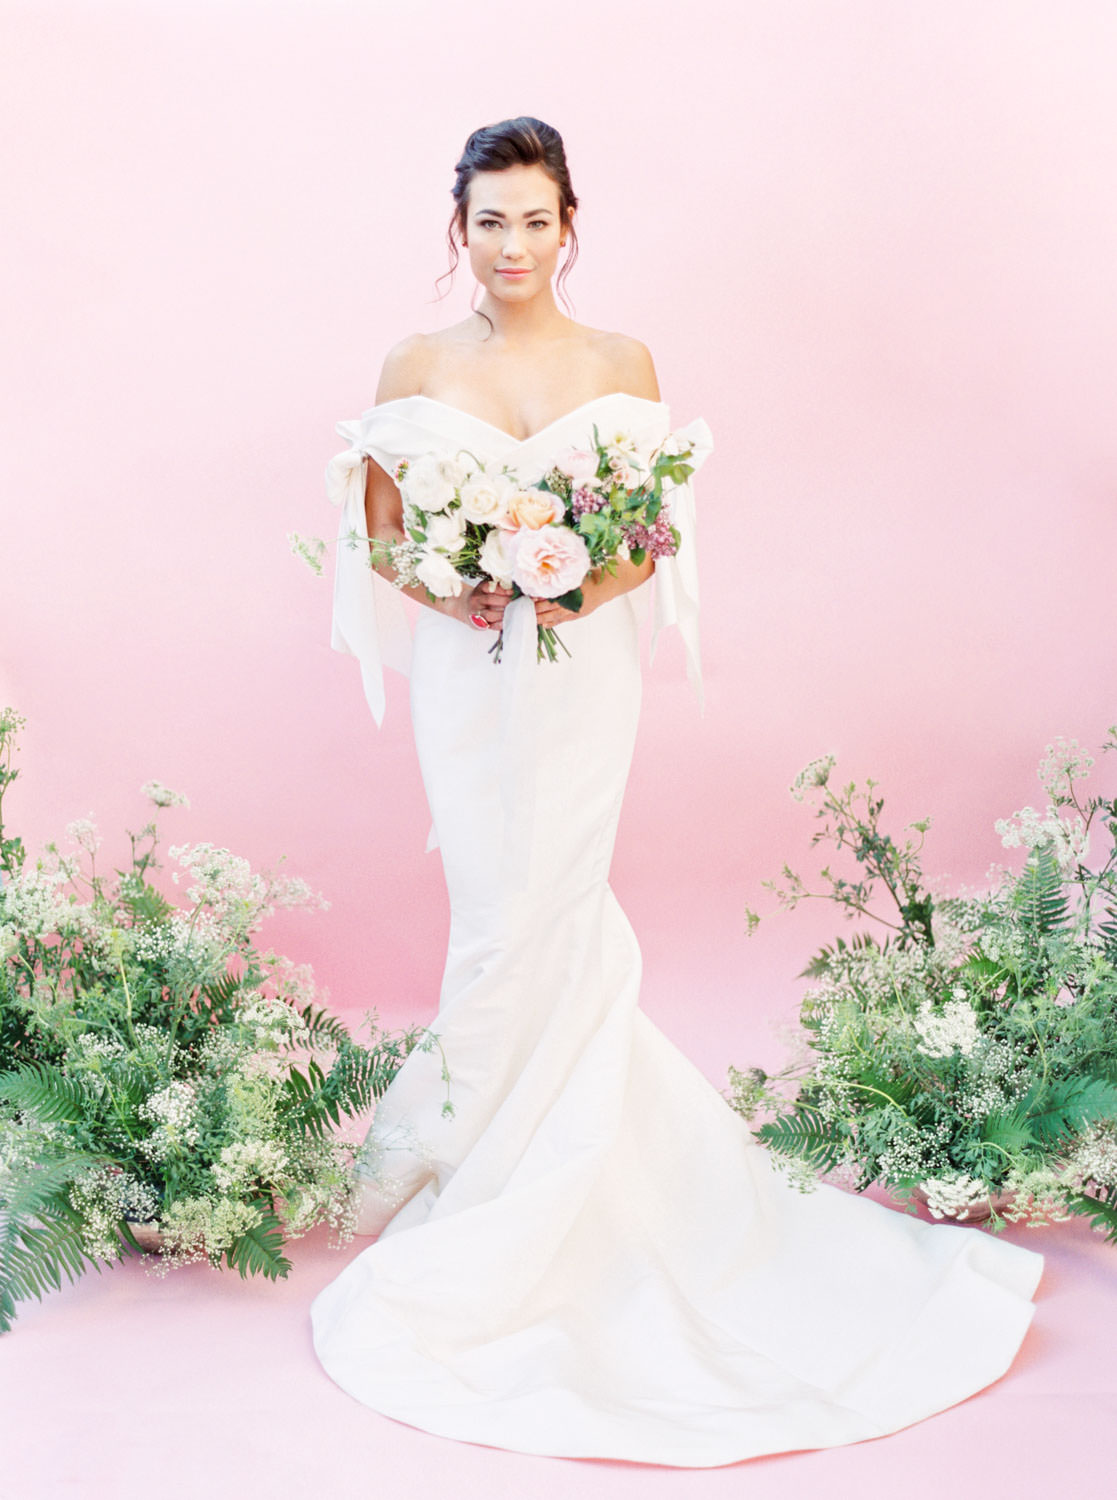 Bride in Marchesa Bridal Gown Spring 2018 off shoulder bow gown with pink and green bouquet, Fern and Queen Anne's lace centerpieces, Pink backdrop wedding editorial on medium format Contax 645 Fuji 400h film by Cavin Elizabeth Photography